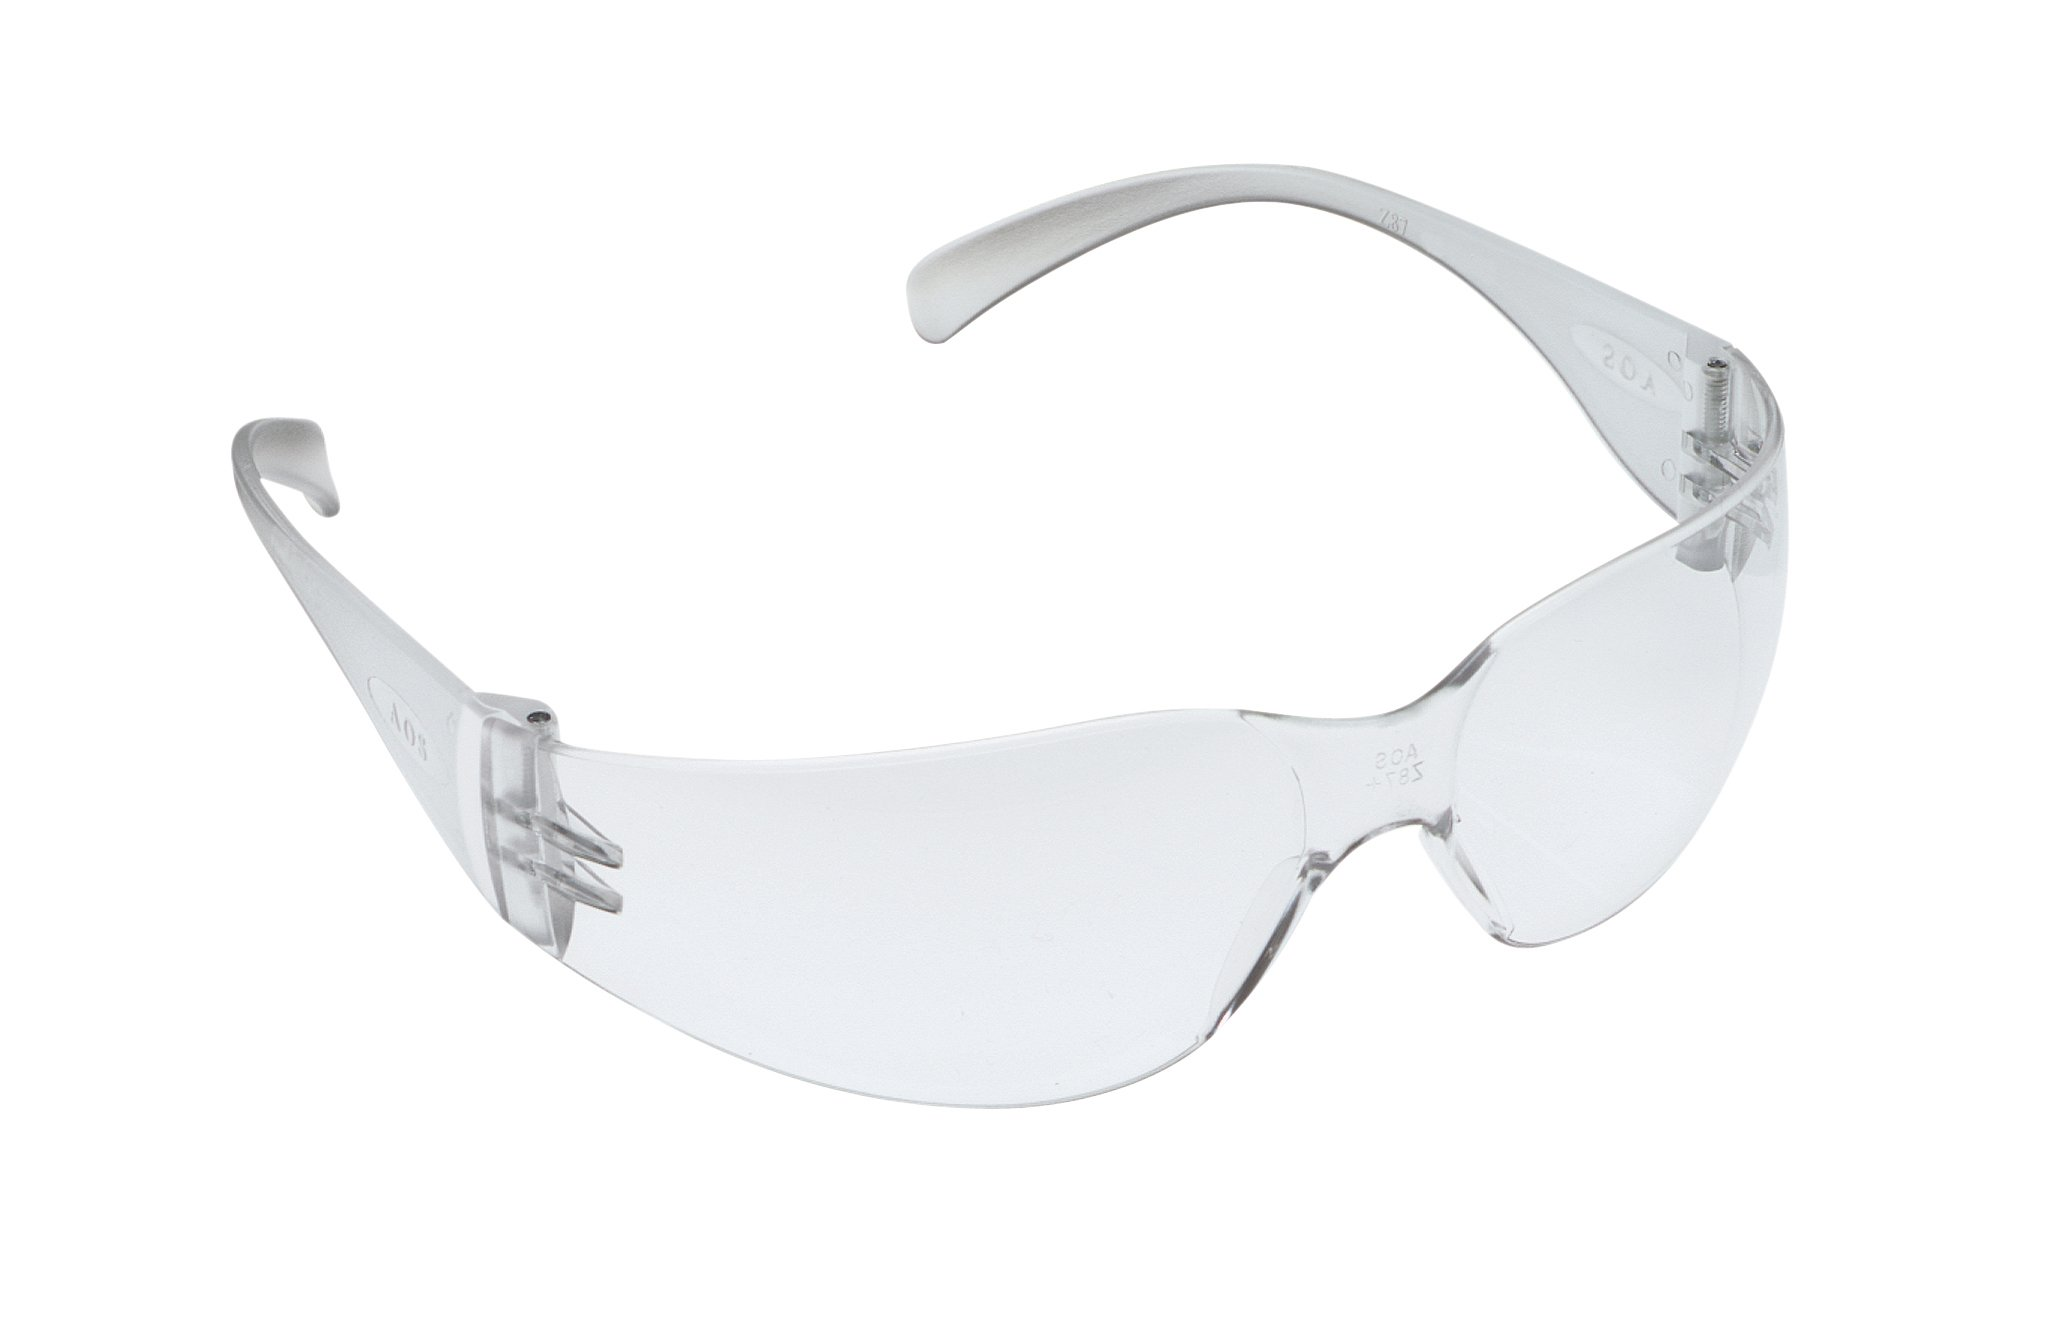 3M Virtua Protective Eyewear, 11228-00000-100 Clear Uncoated Lens, Clear Temple  (Pack of 100) by 3M Personal Protective Equipment